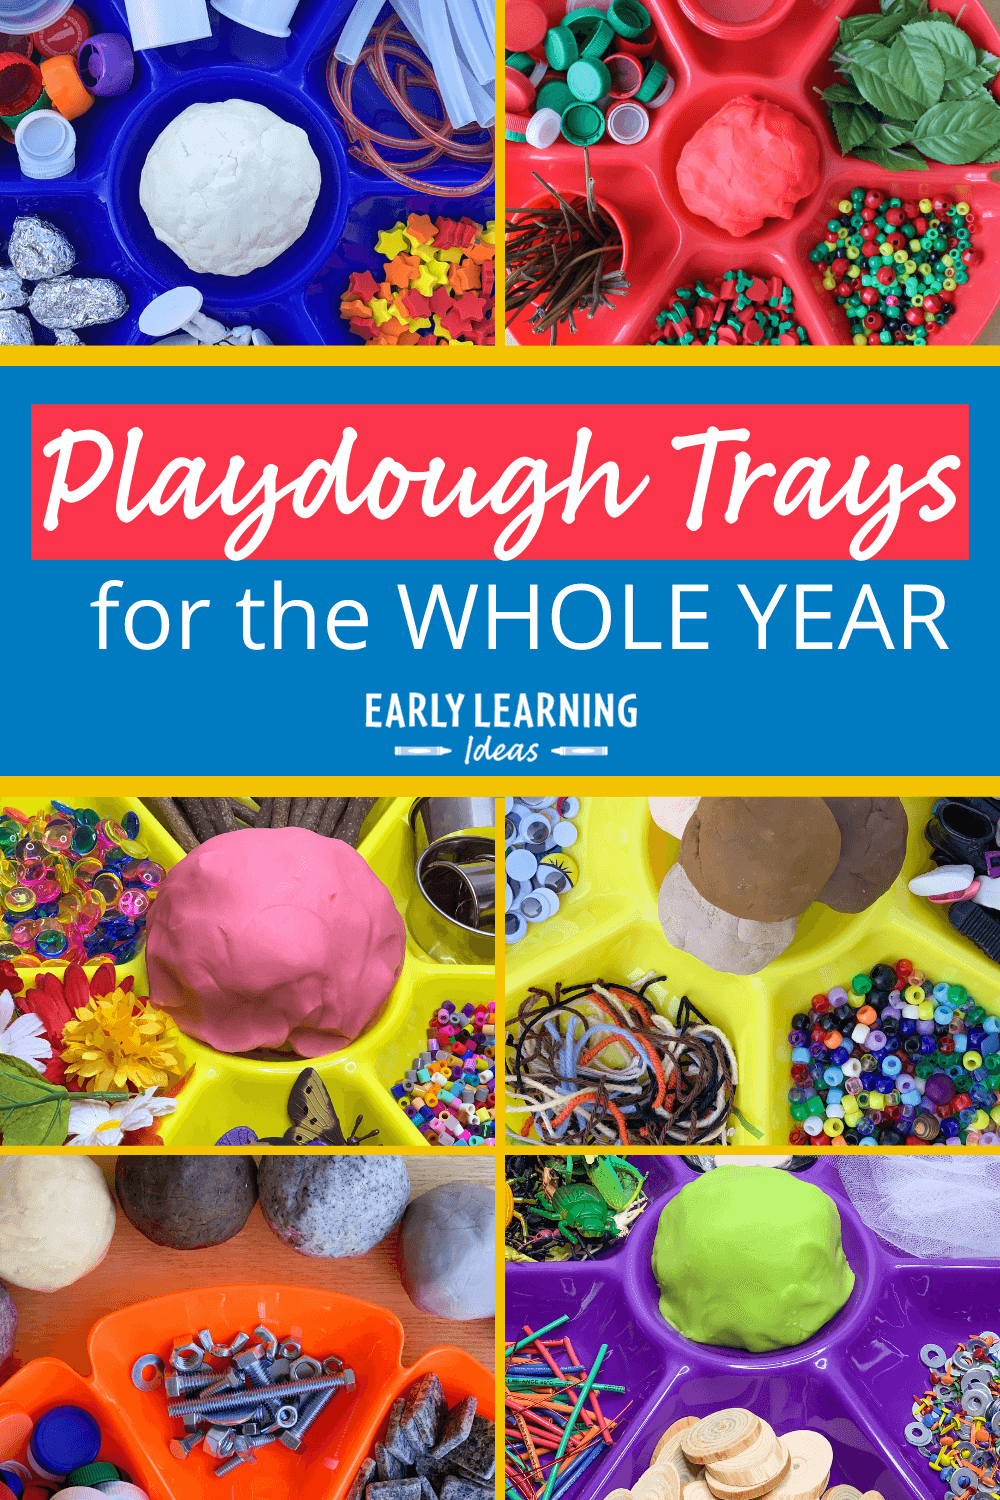 How to Make Playdough Trays for Every Season of the Year